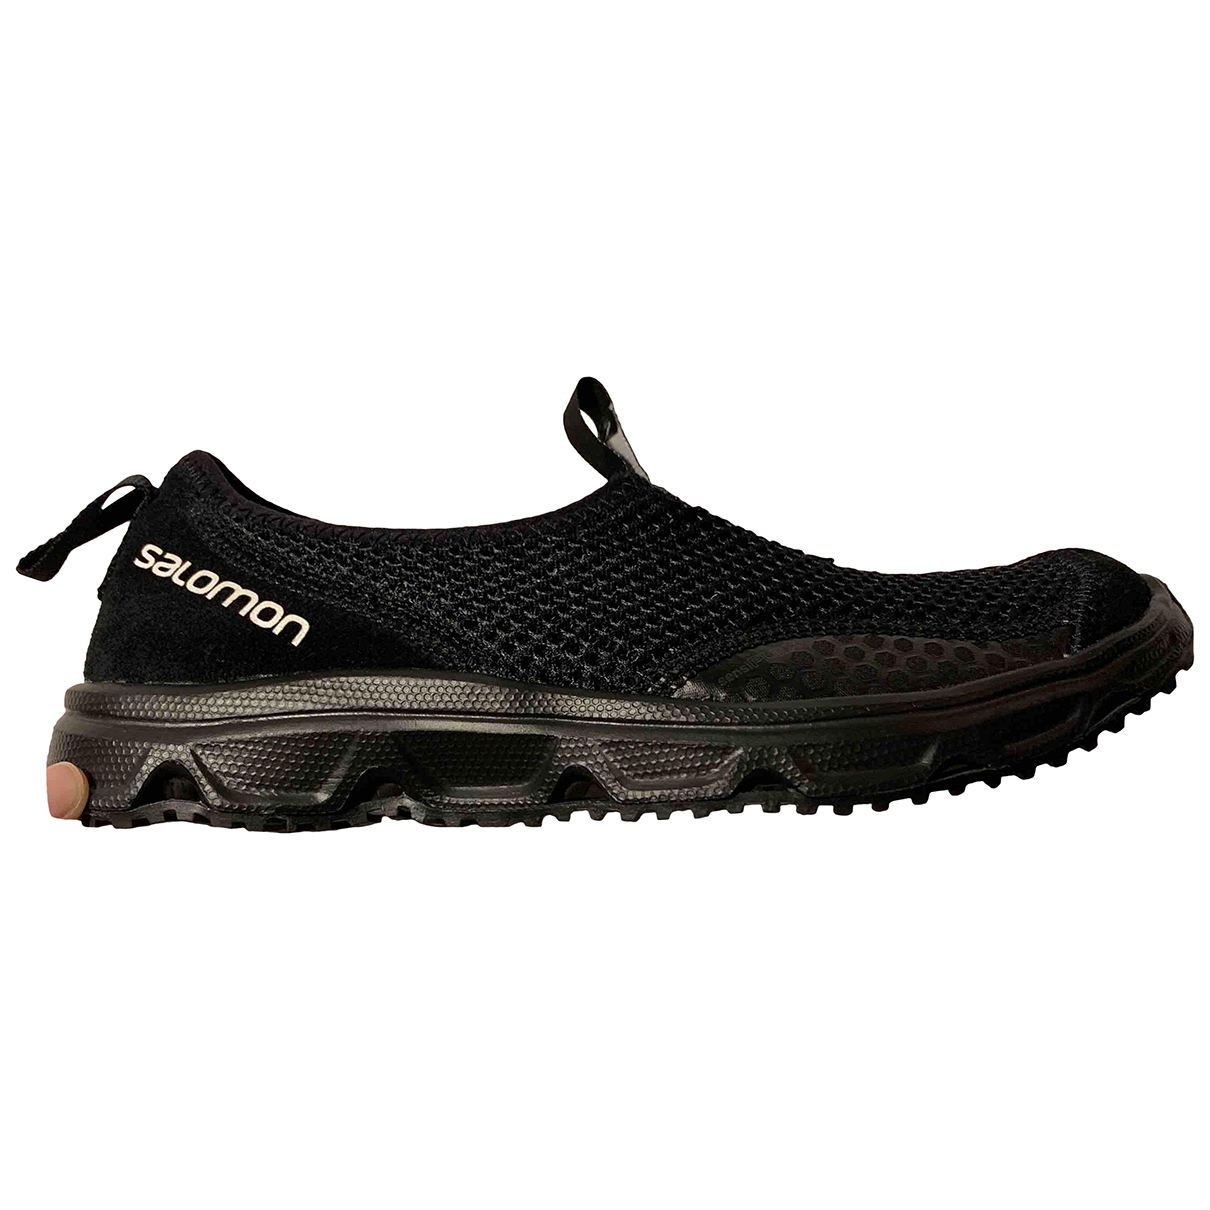 Salomon N Black Cloth Trainers for Women 4.5 UK